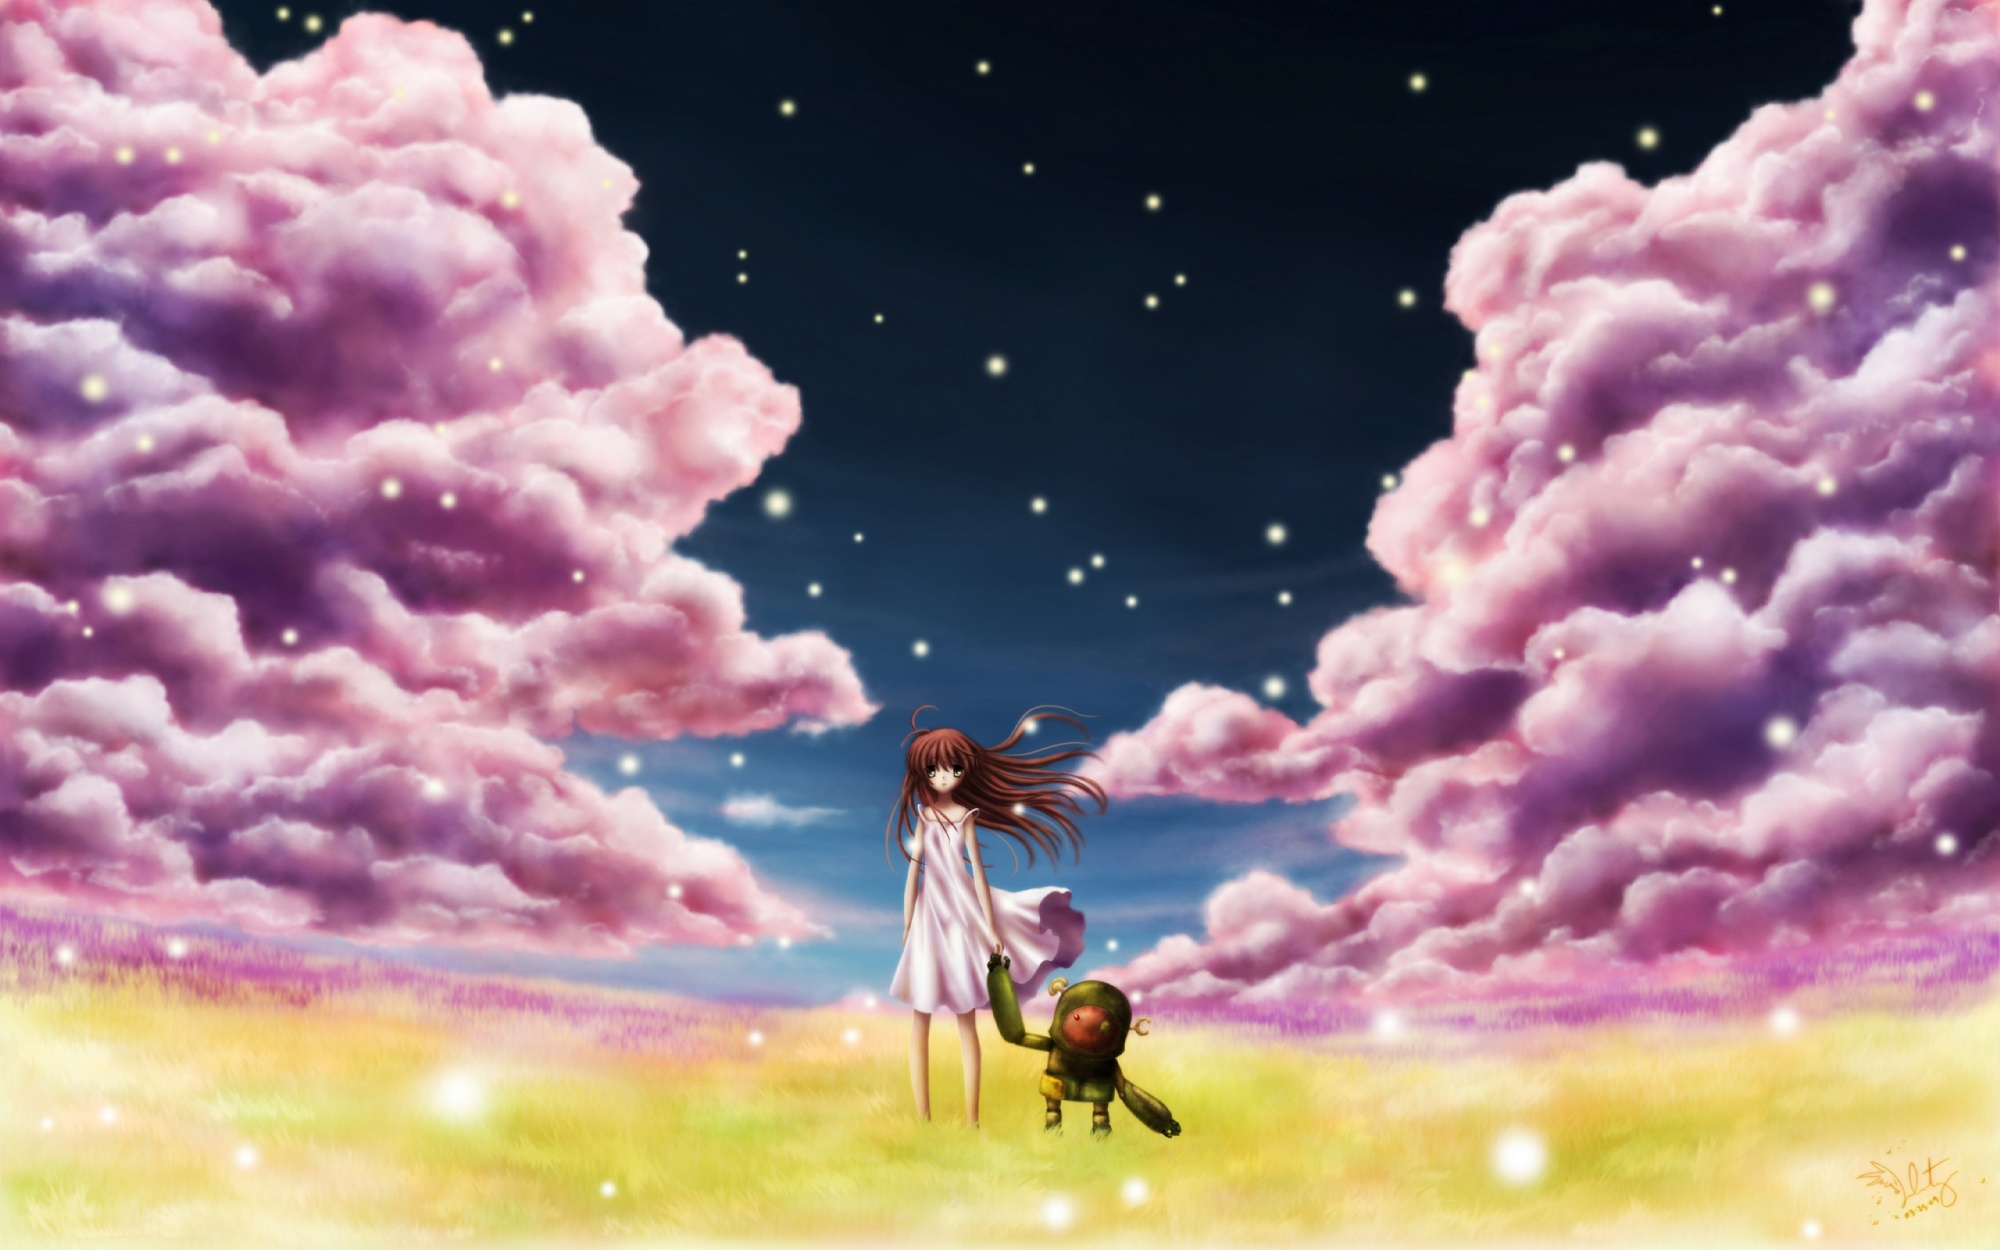 Clannad after story Anime HD Wallpaper